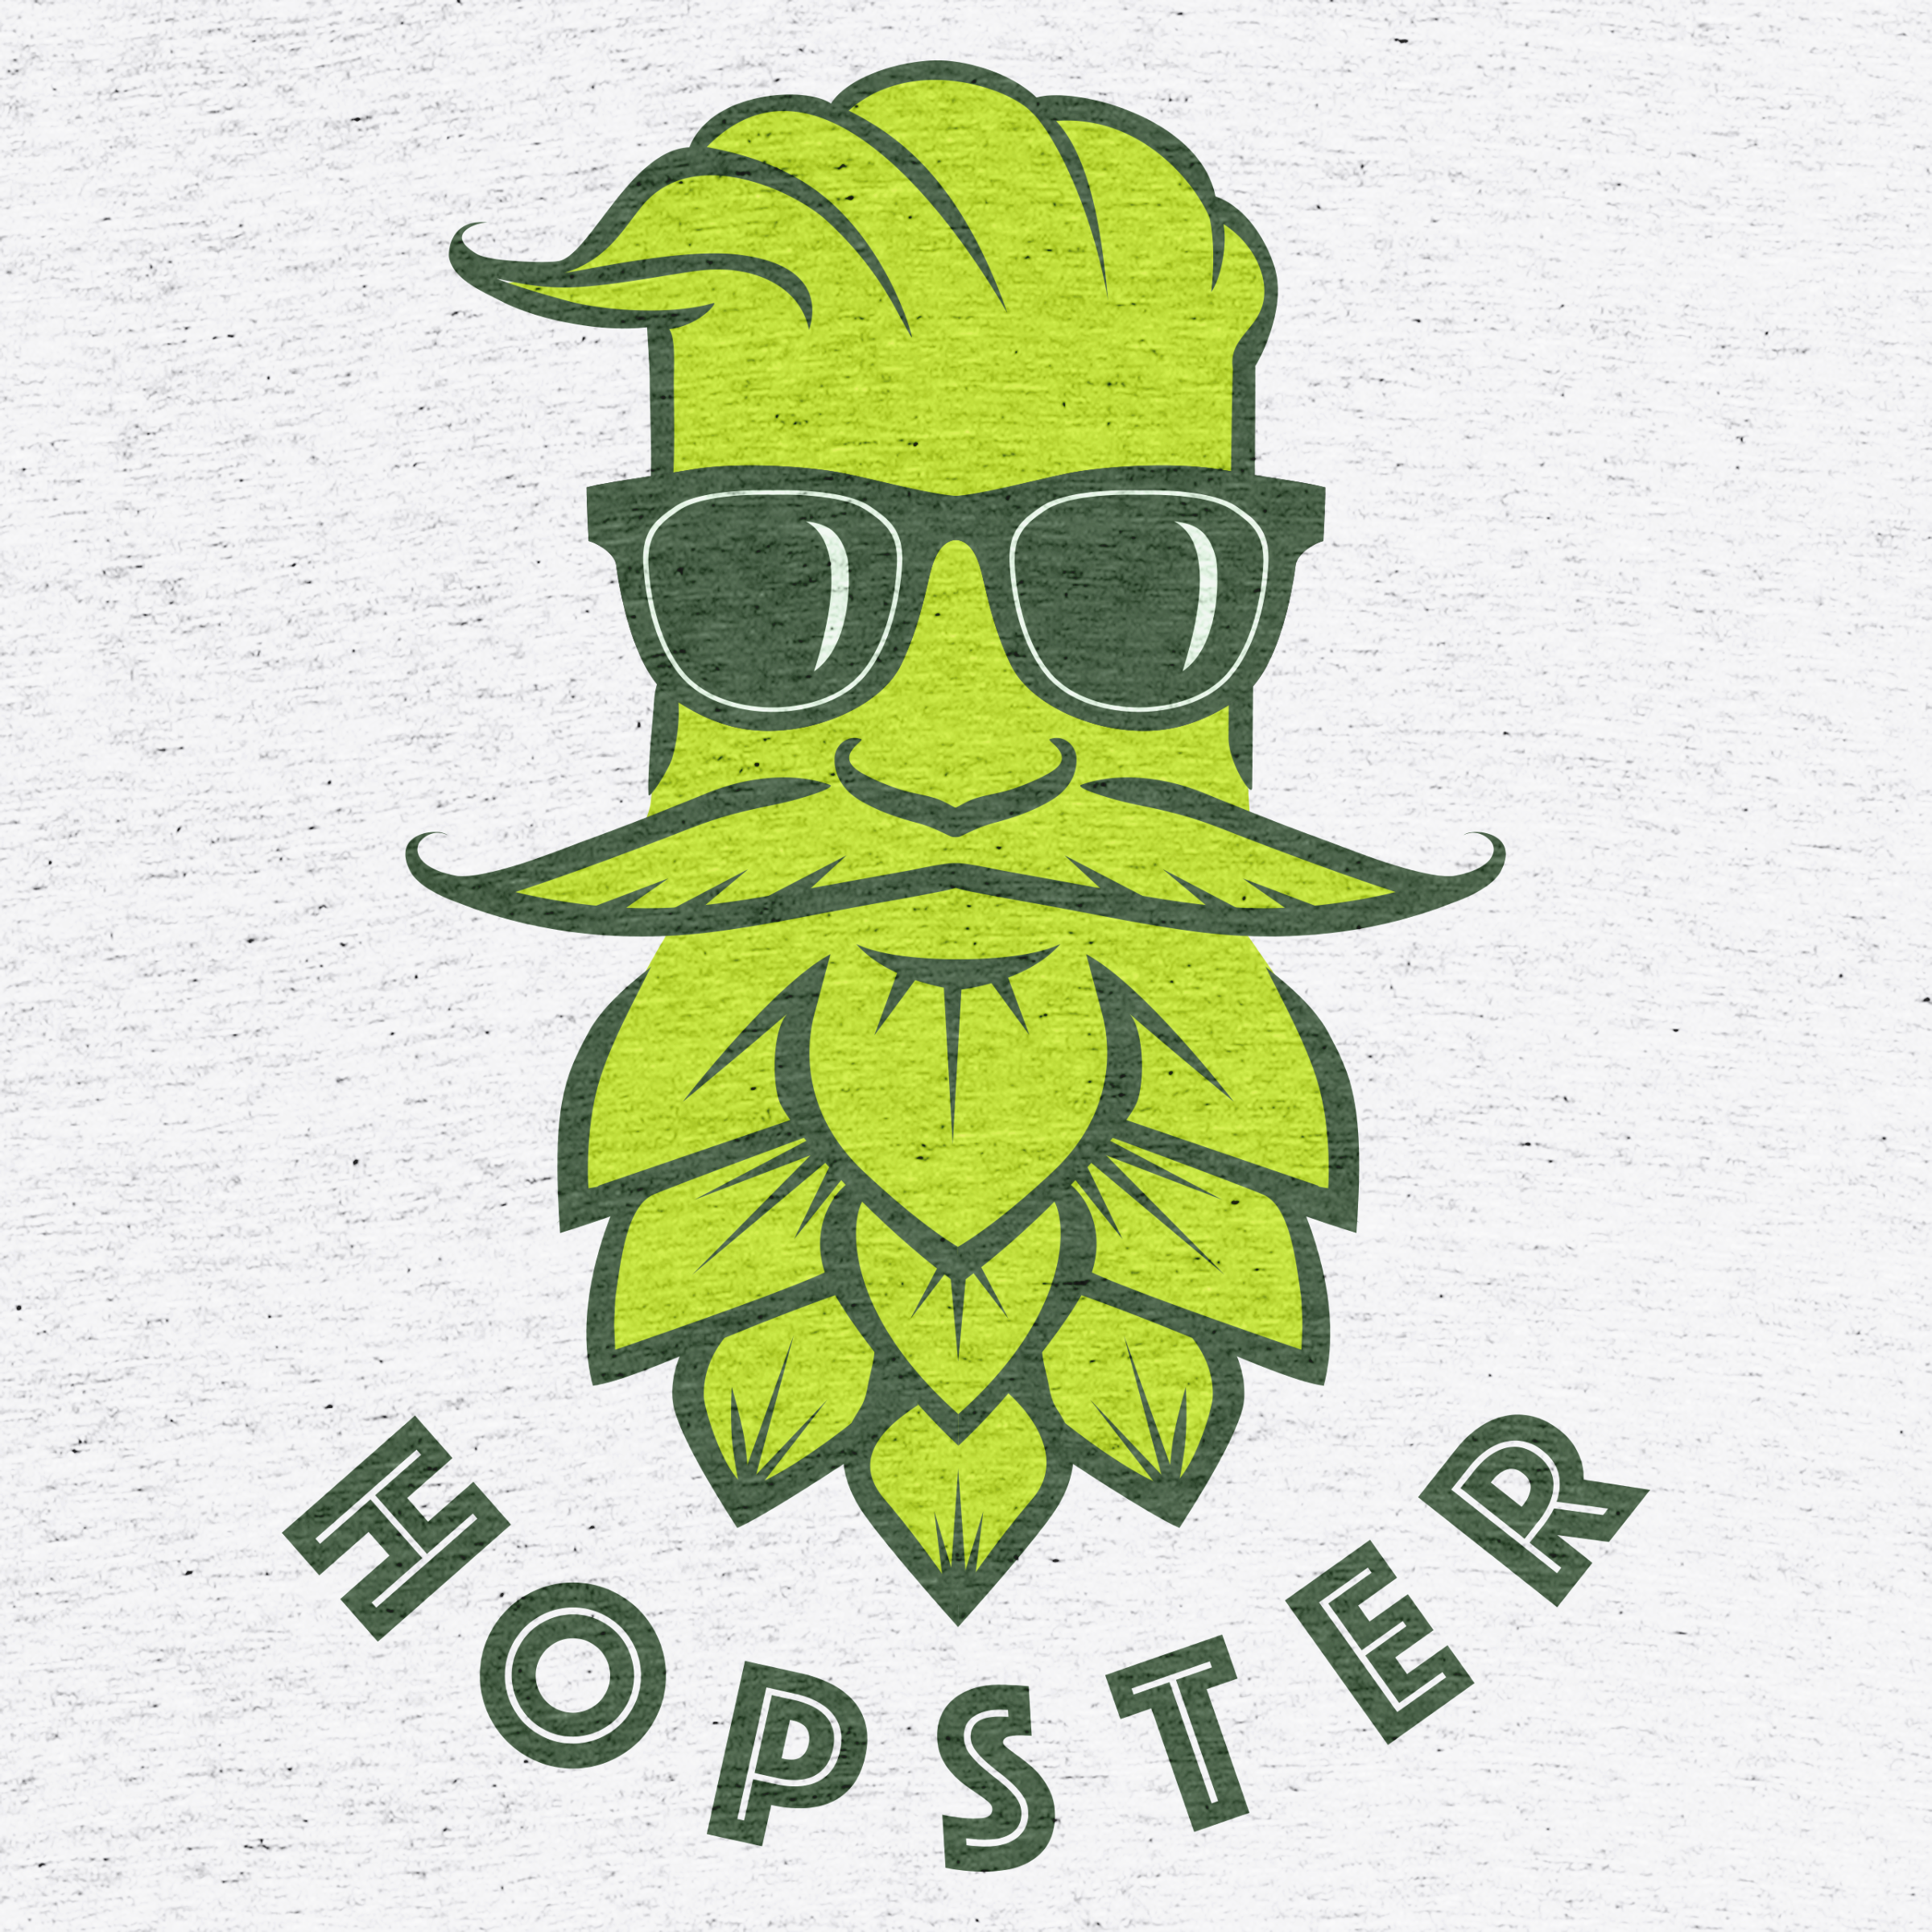 The Hopster